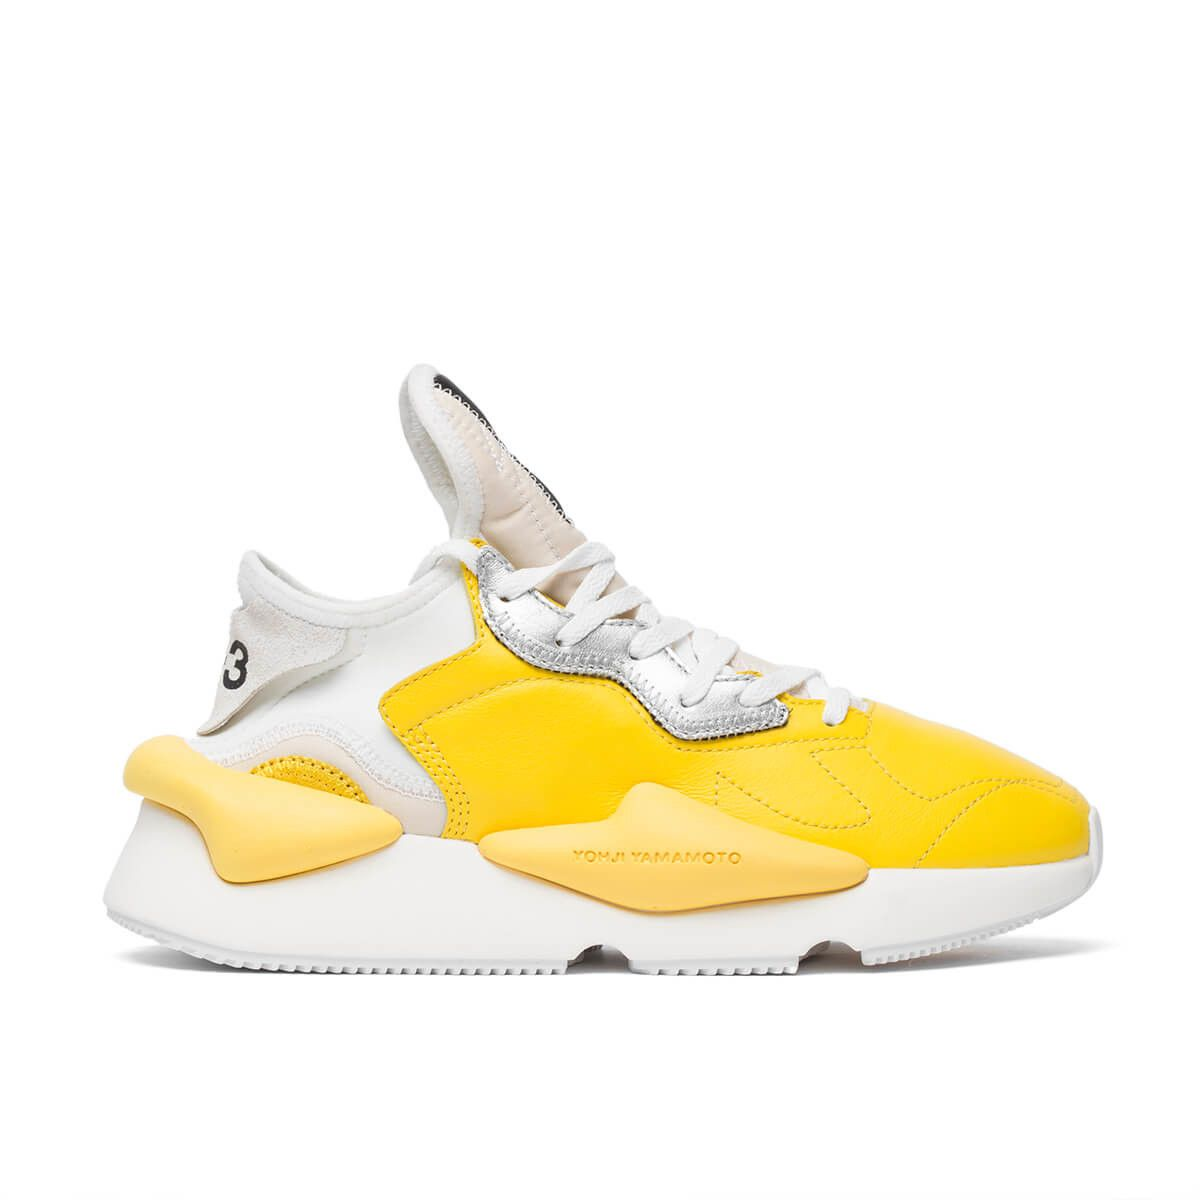 2b3d21c5418bb Kaiwa sneakers from the Pre-Fall 2018 Y-3 by Yohji Yamamoto collection in  yellow